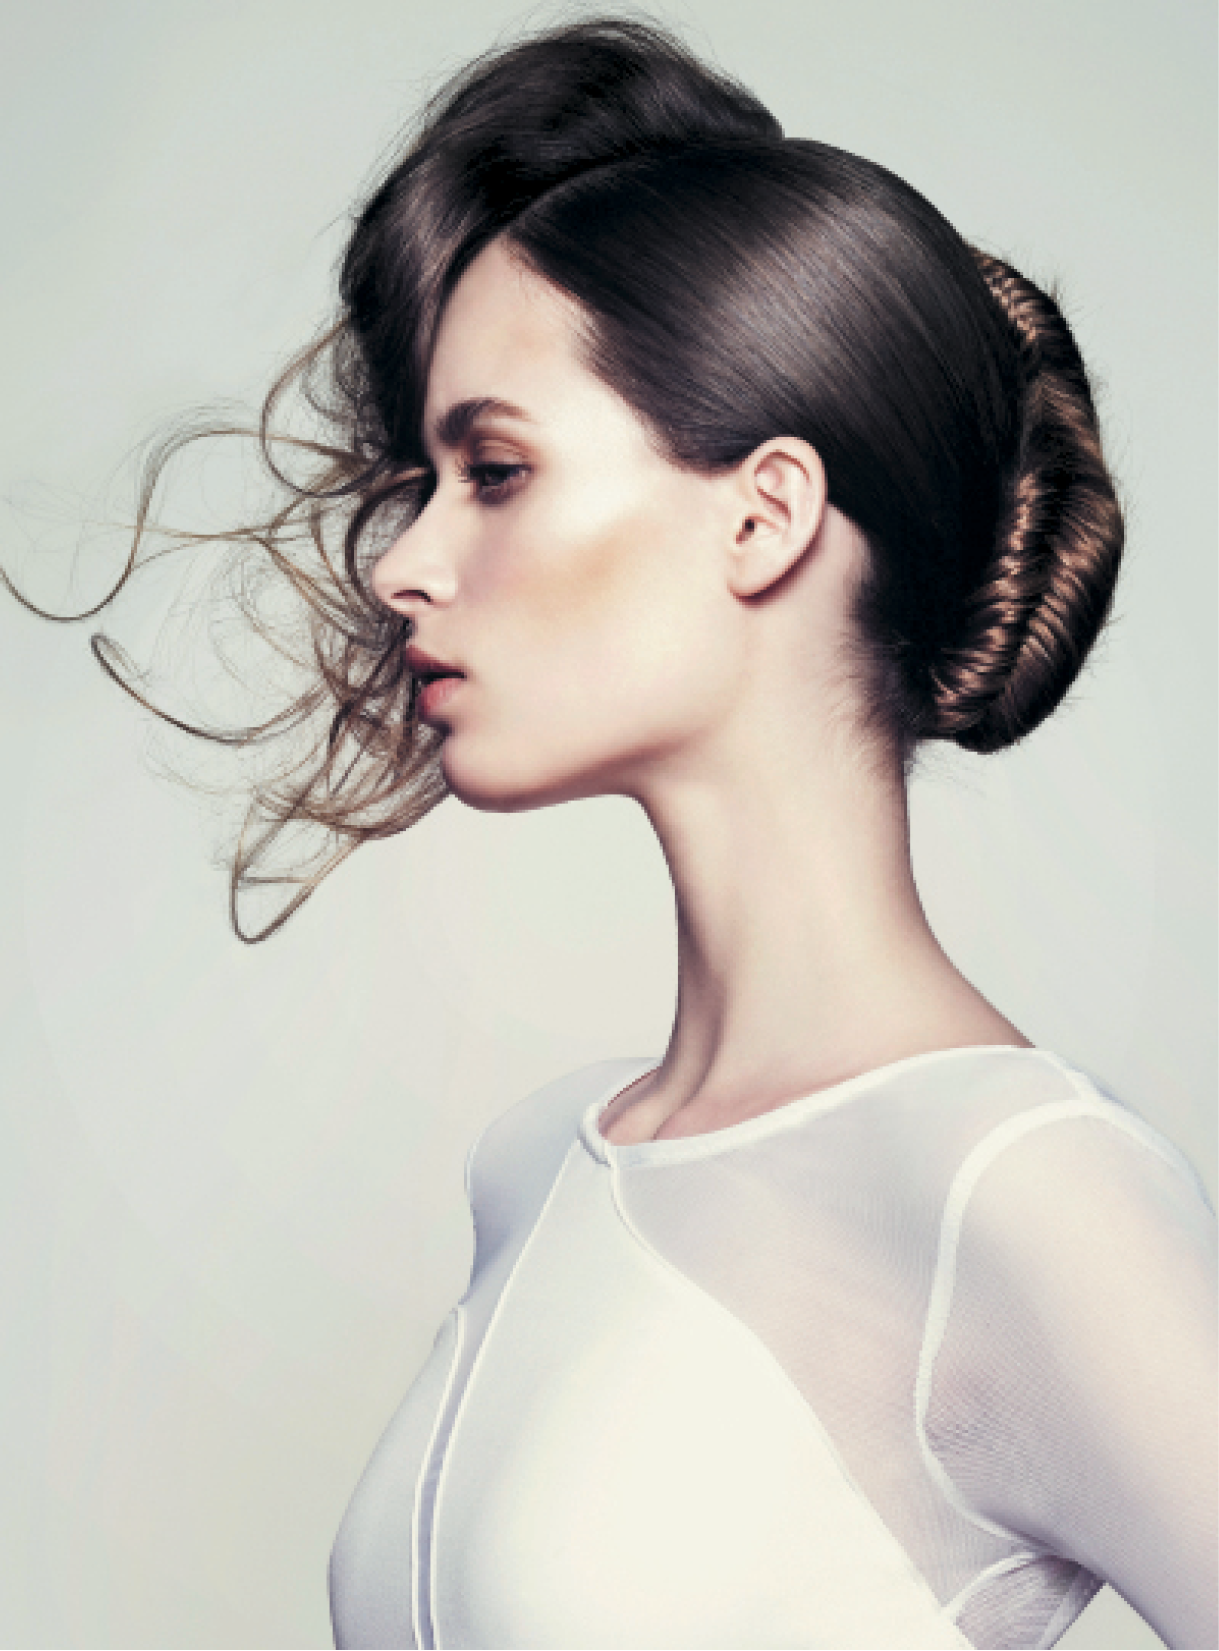 Ray of Light - March 2014 Feature in Amaerican Salon Magazine